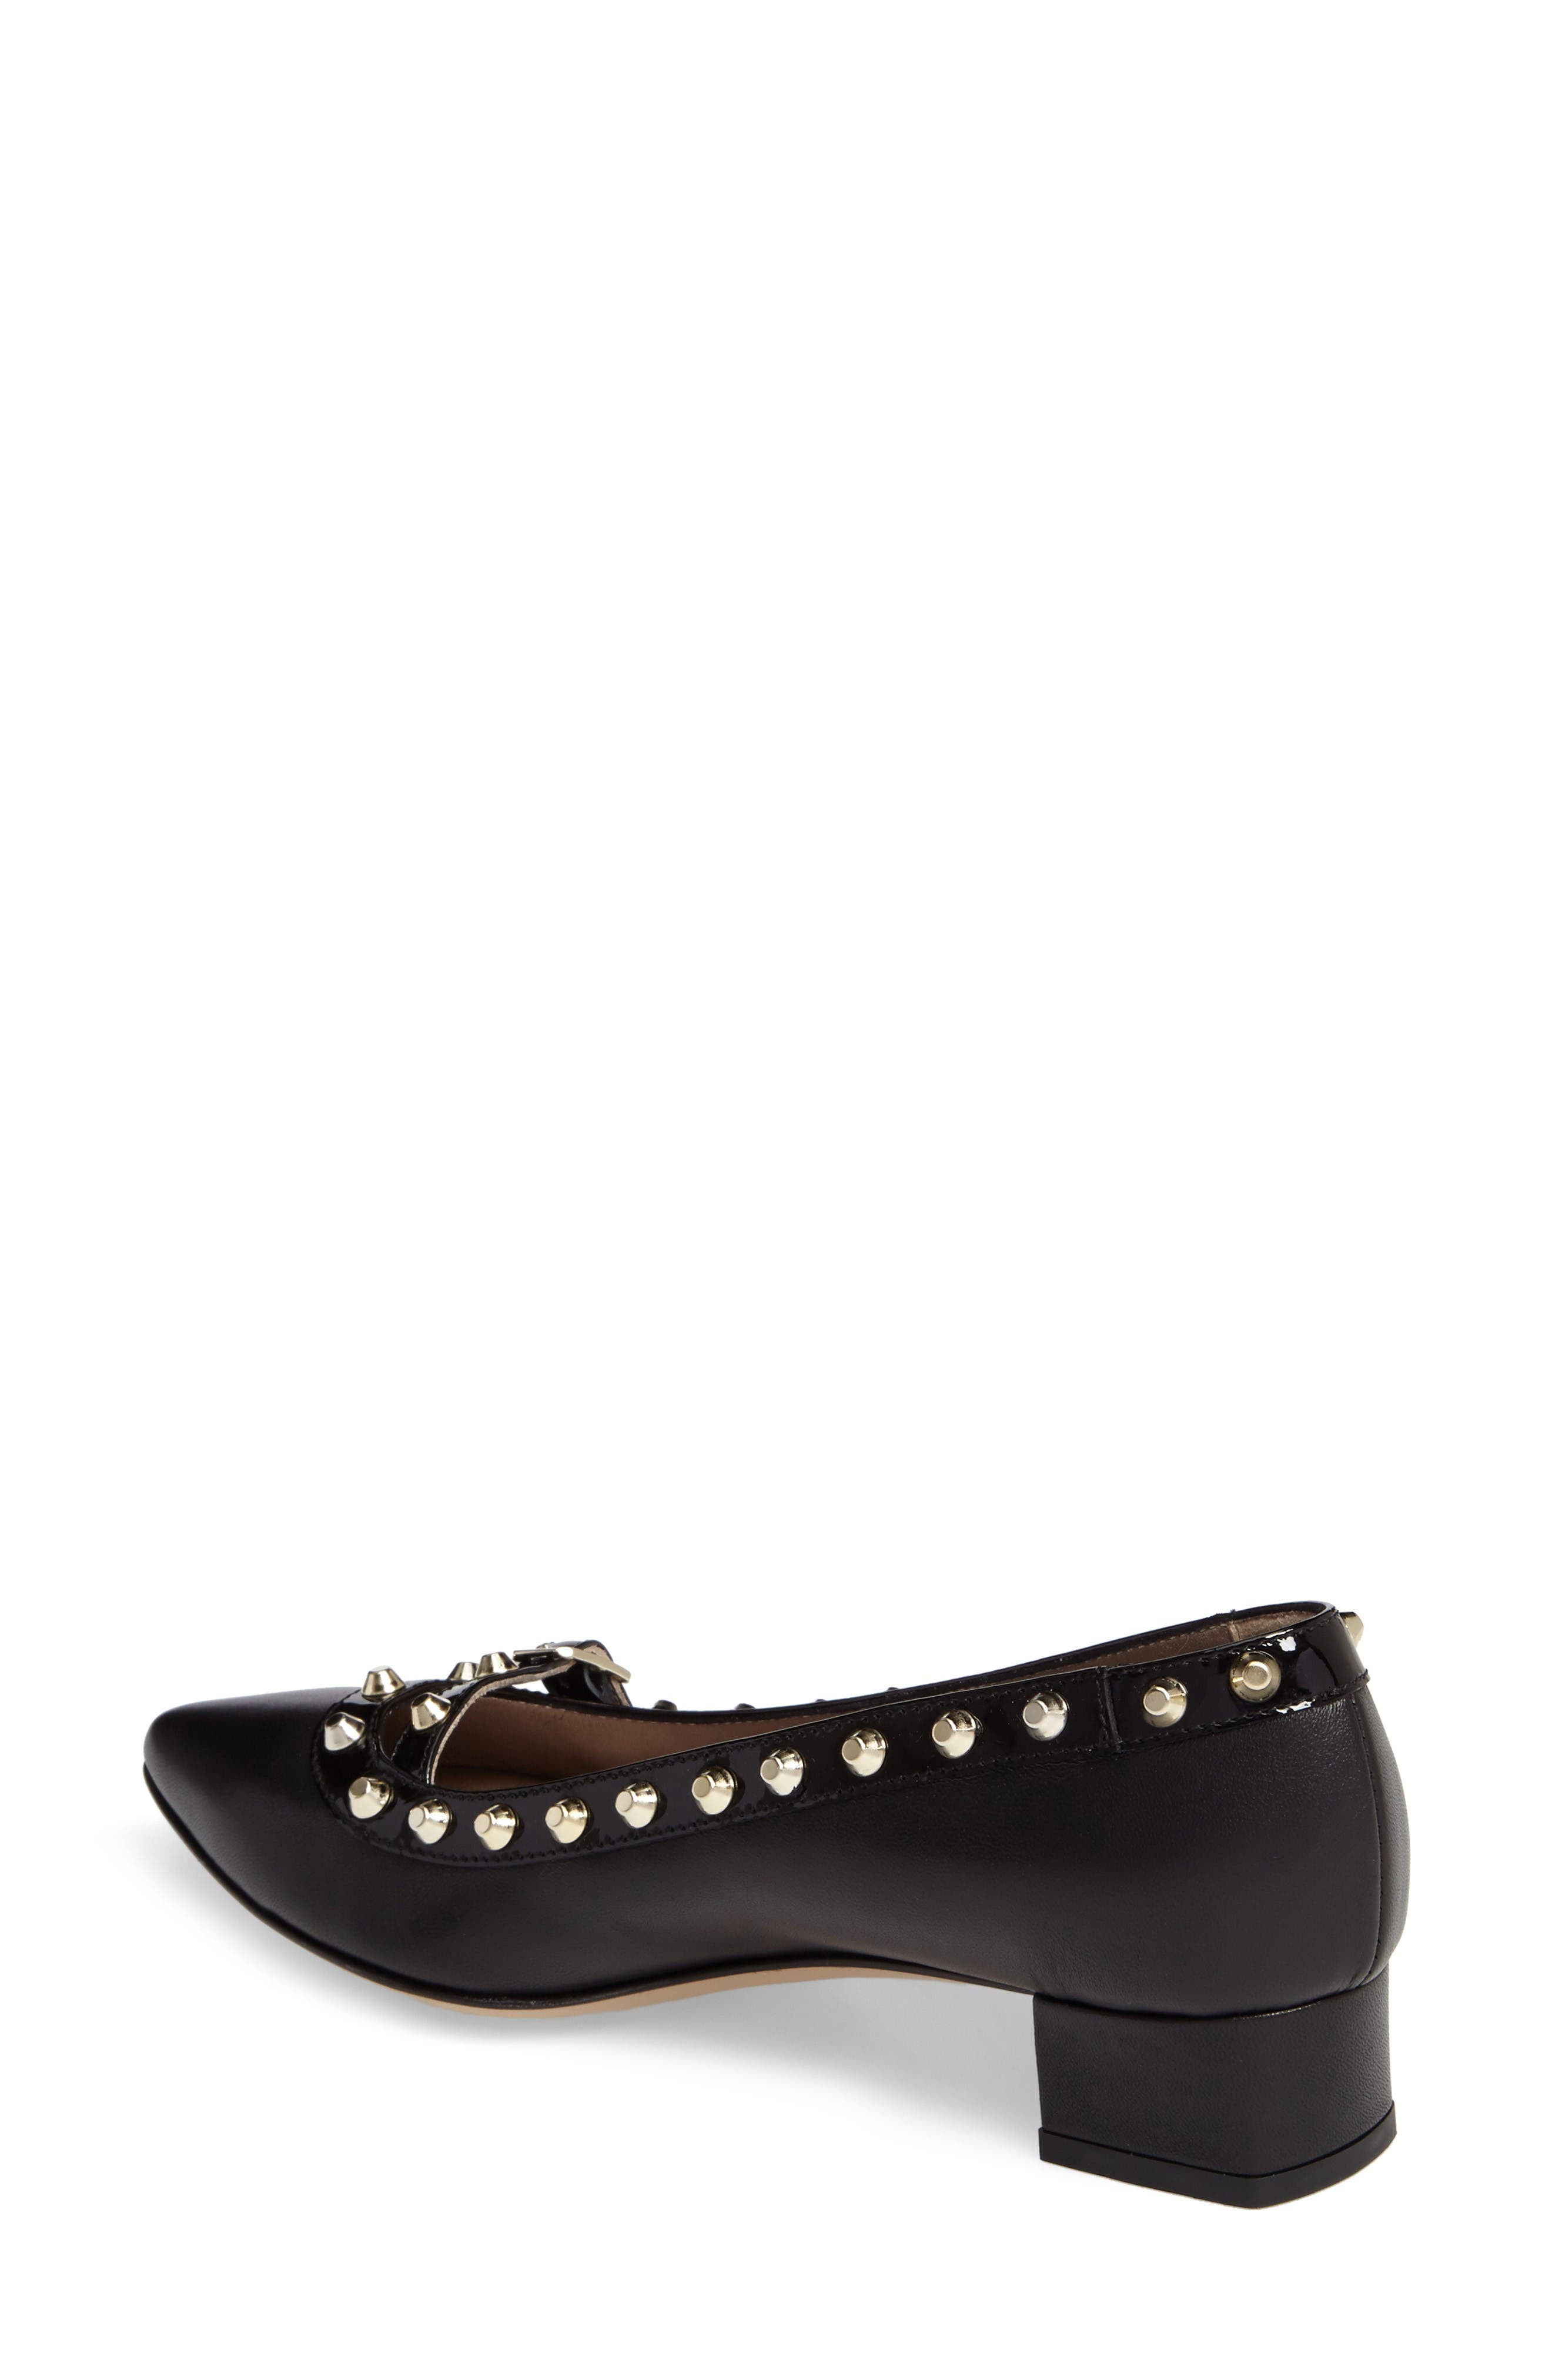 Studded Mary Jane Pump,                             Alternate thumbnail 2, color,                             Black Leather